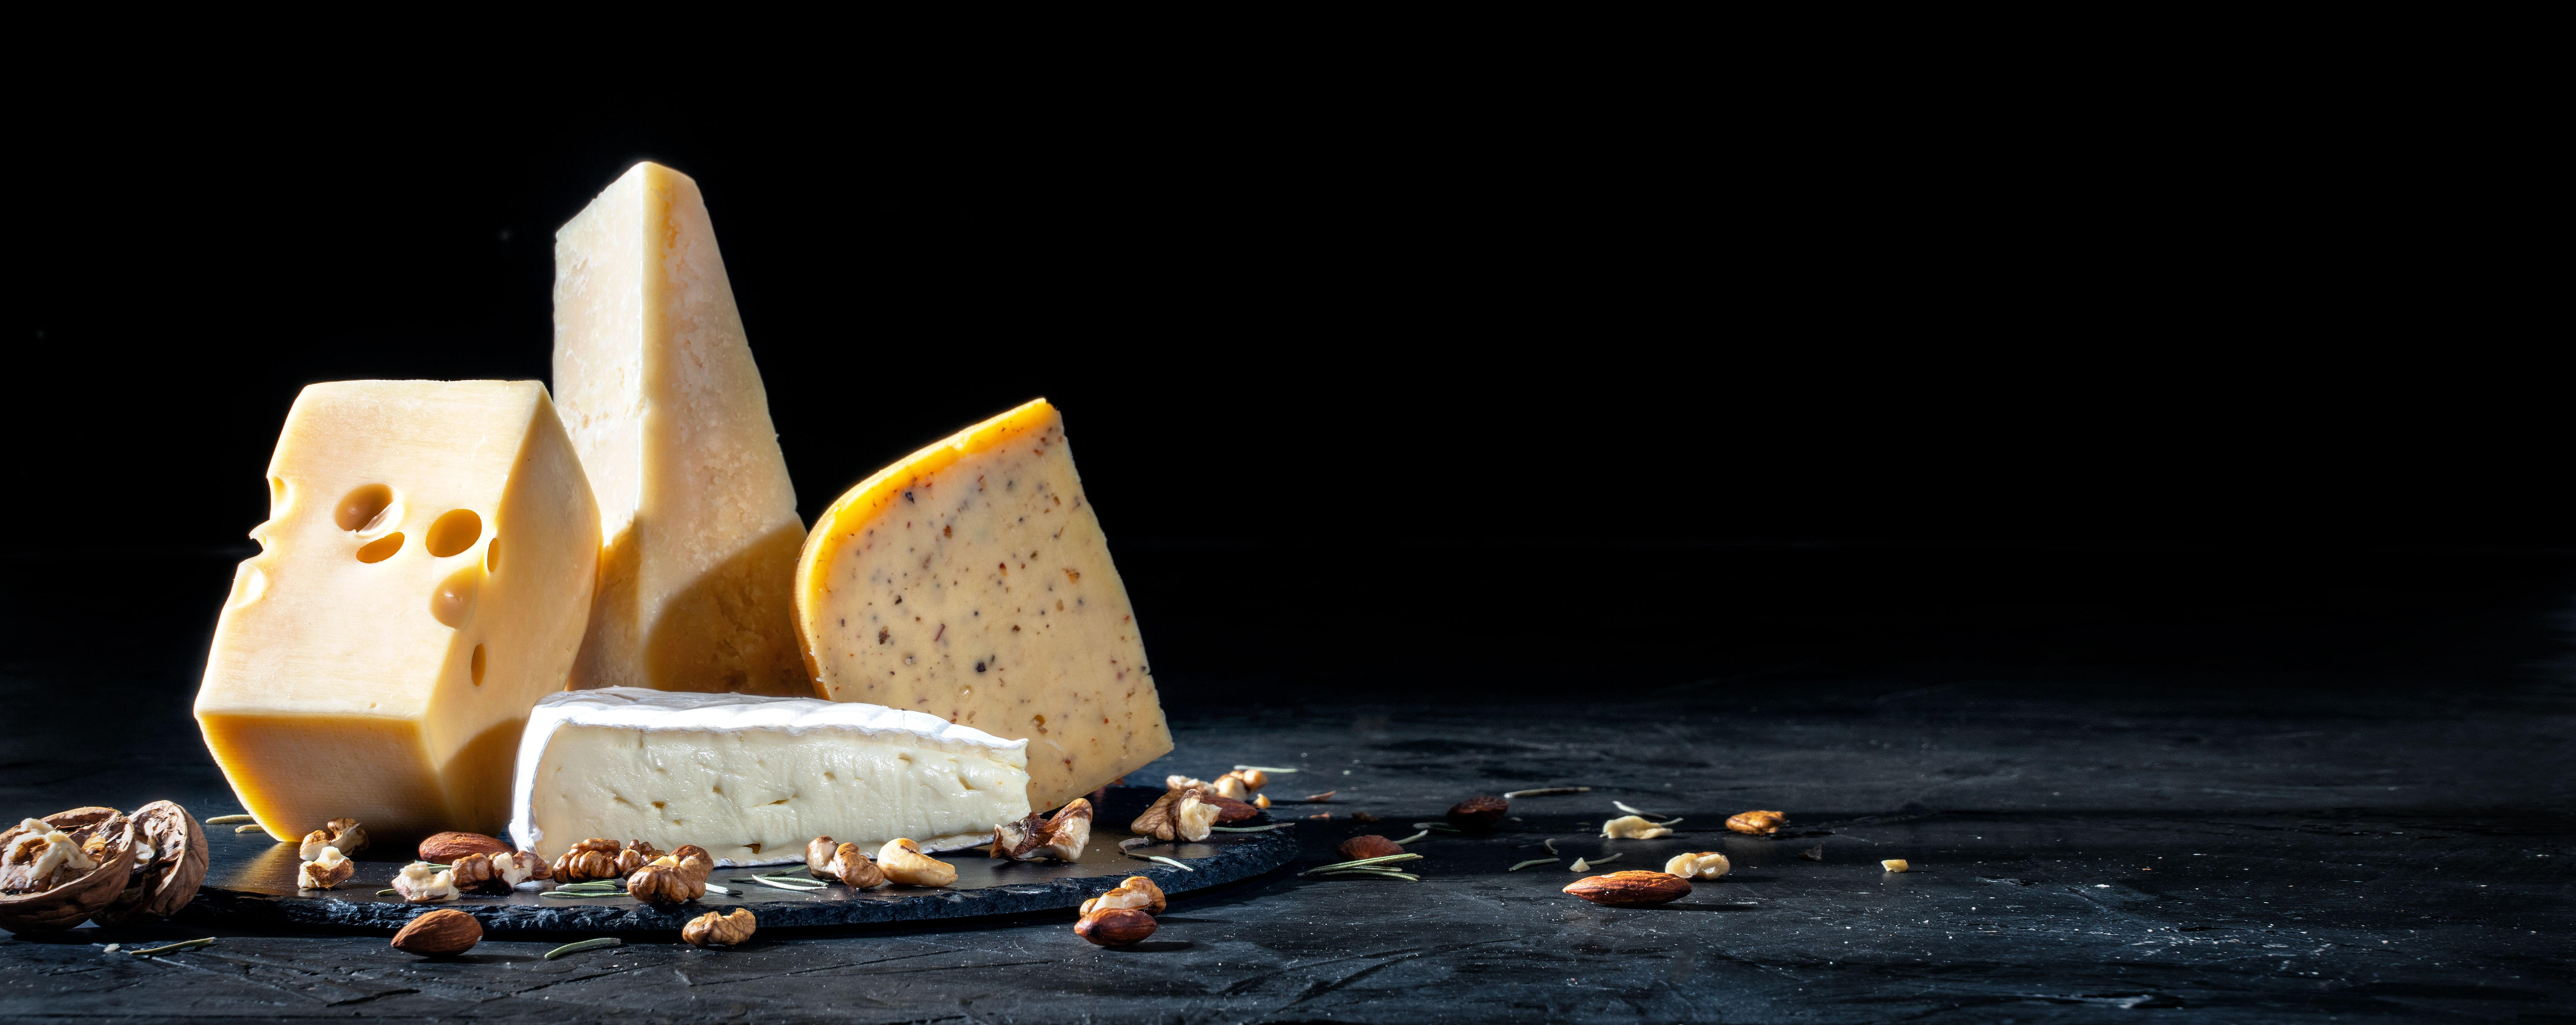 Cheese is a healthy food for teeth